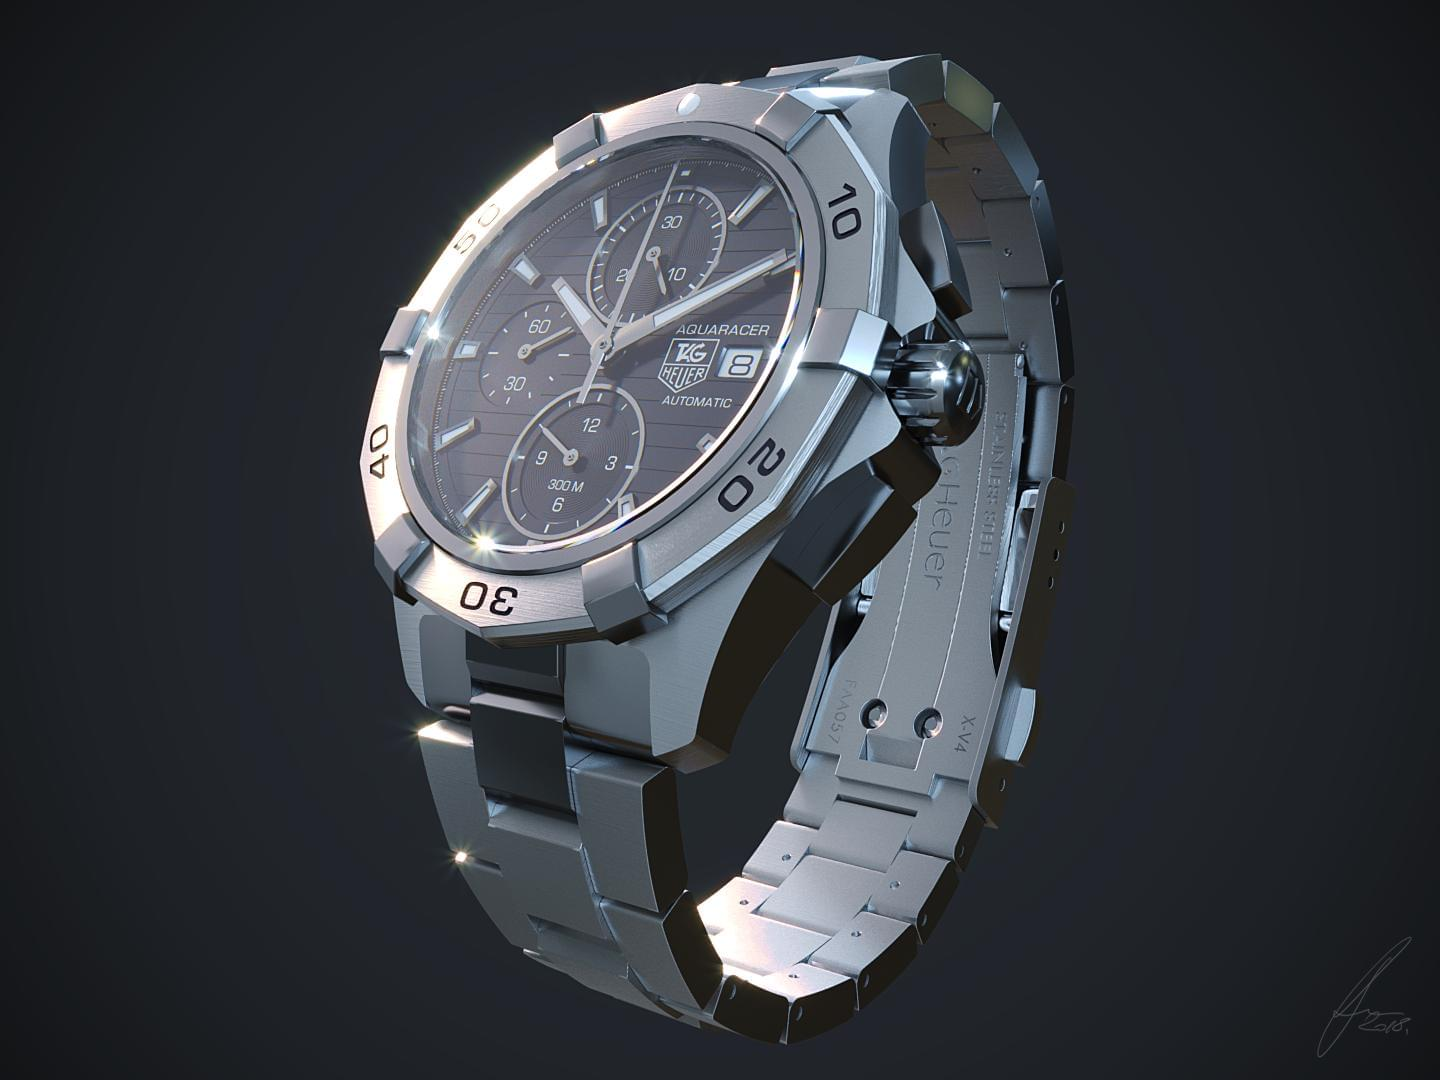 Photorealistic Product Visualization by tomislavn - 111136